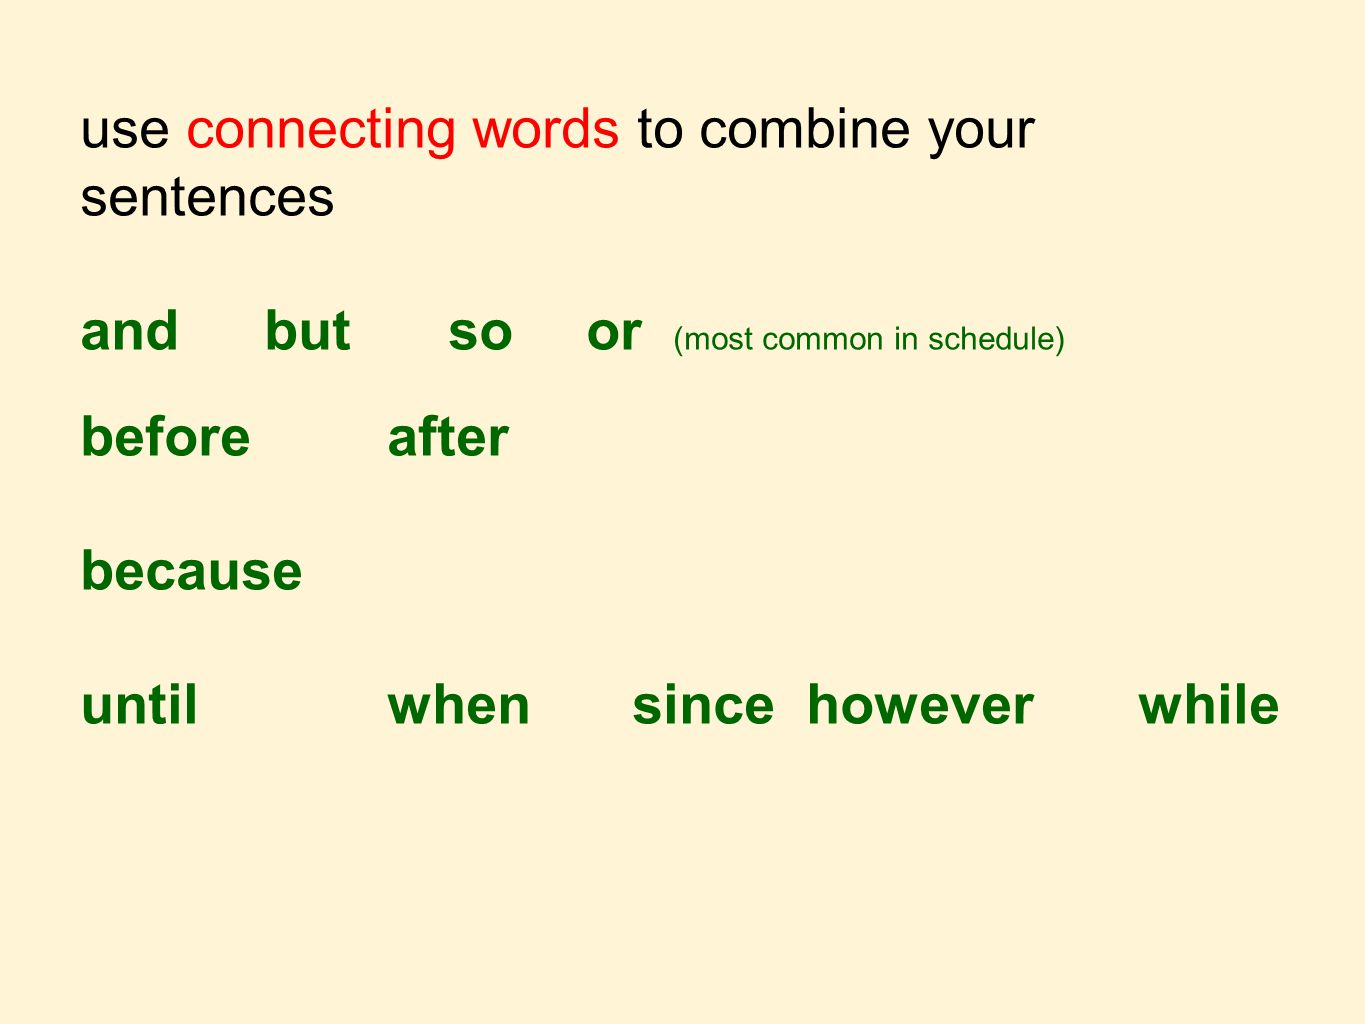 use connecting words to combine your sentences andbutso or (most common in schedule) beforeafter because untilwhensince however while